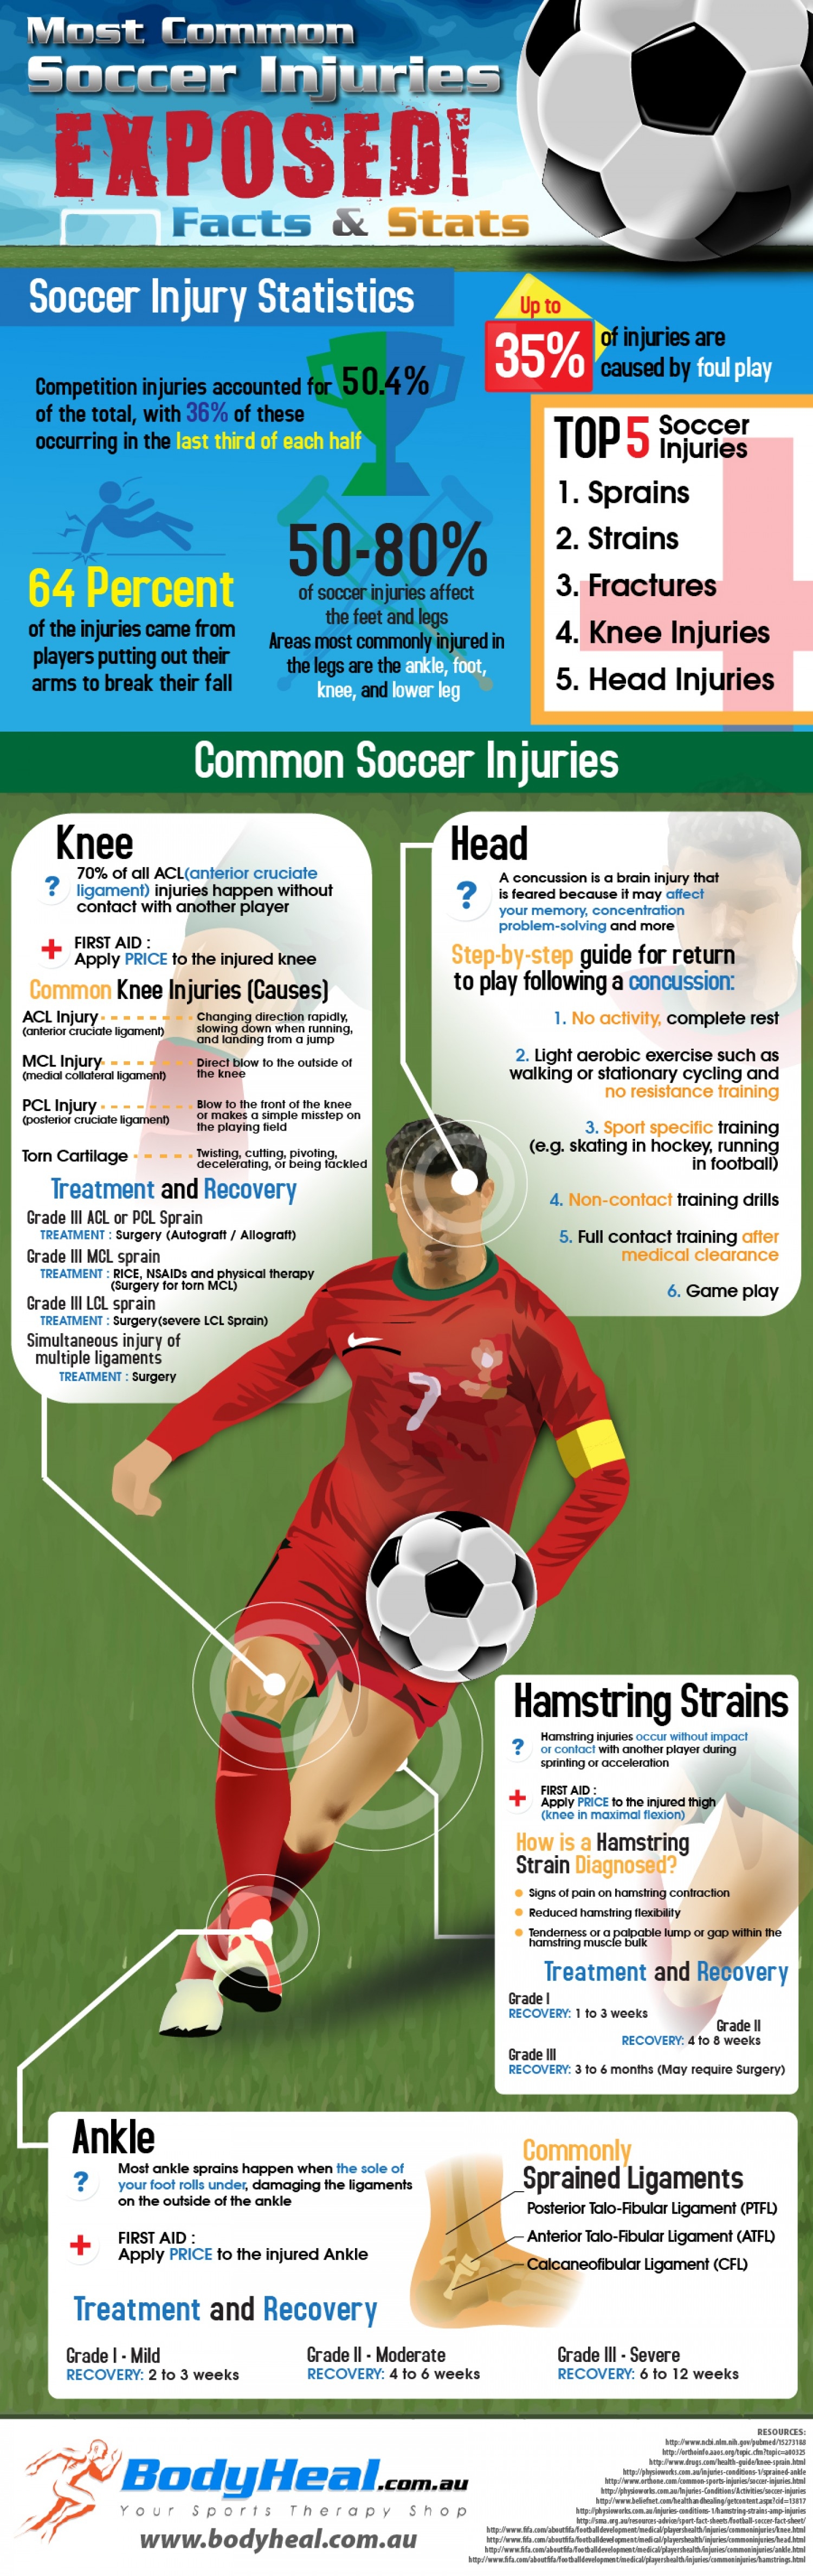 Most Common Soccer Injuries Exposed Facts Stats Infographic Soccer Soccer Workouts Soccer Training